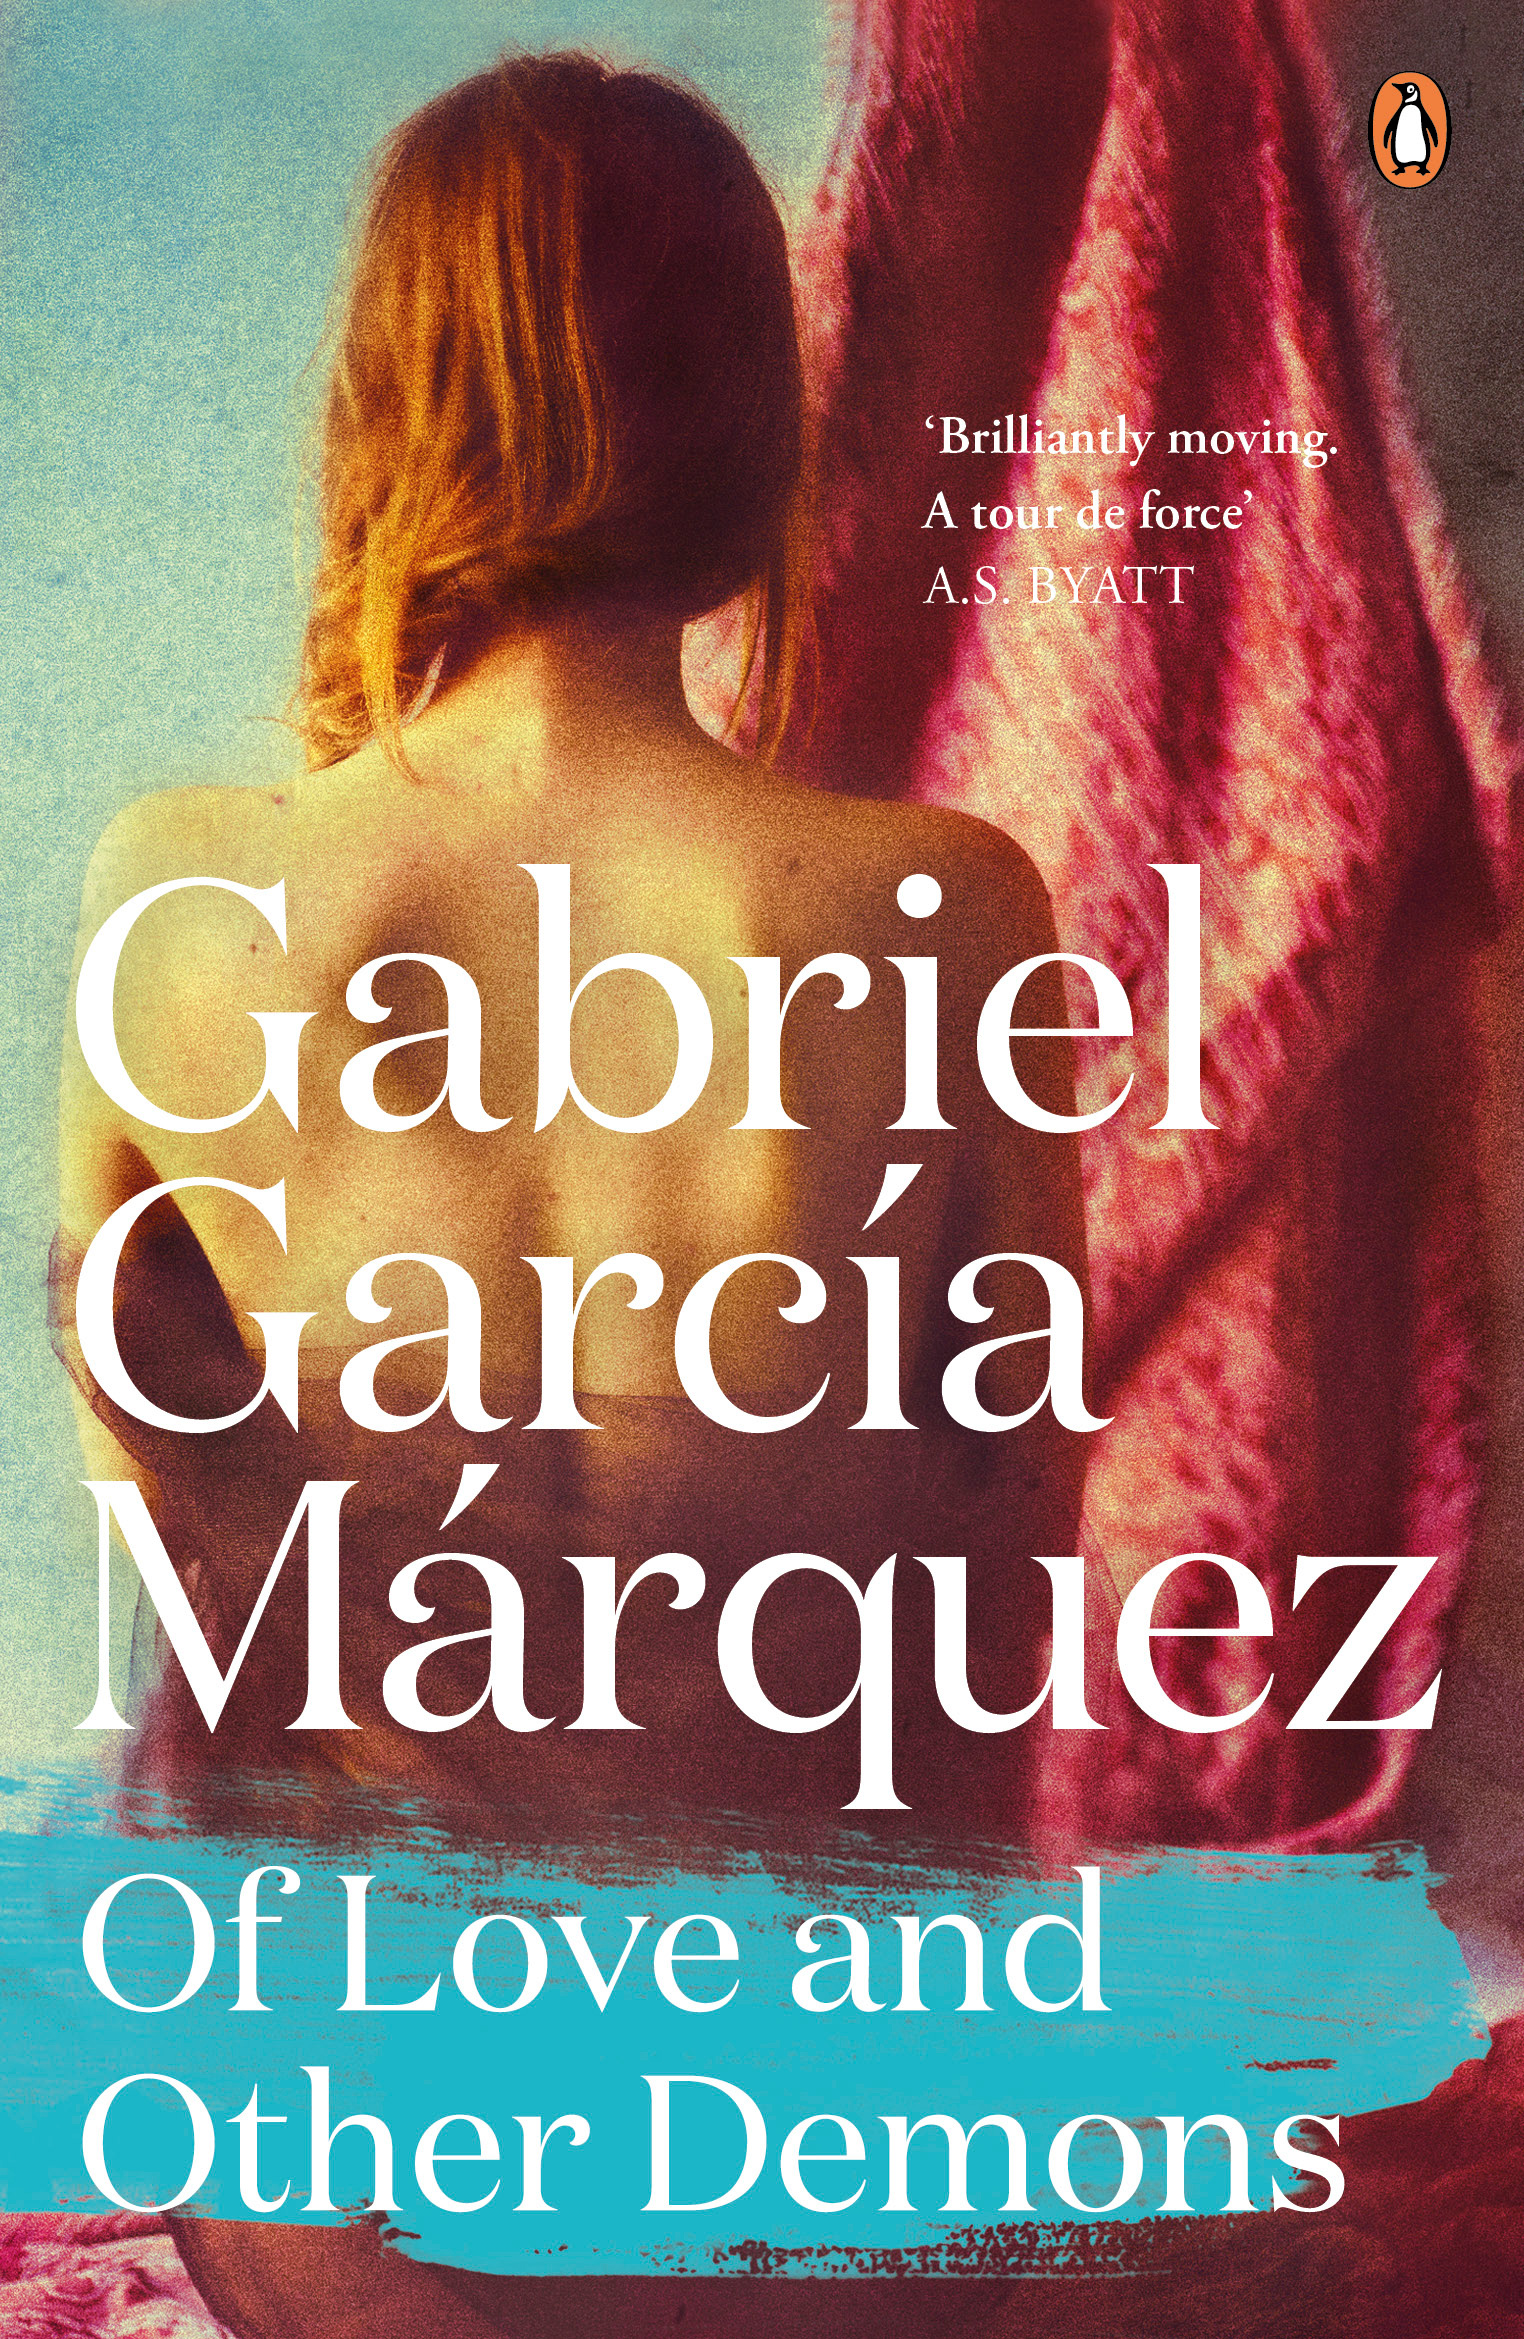 a review of gabriel garcia marquezs novel of love and other demons and its critical reception Later novels & other writings (raymond chandler) later works (richard wright)  a critical study of the writer and communism in the twentieth century (jurgen ruhle)  (gabriel garcia marquez) love is a dog from hell: poems, 1974-1977 (charles bukowski.